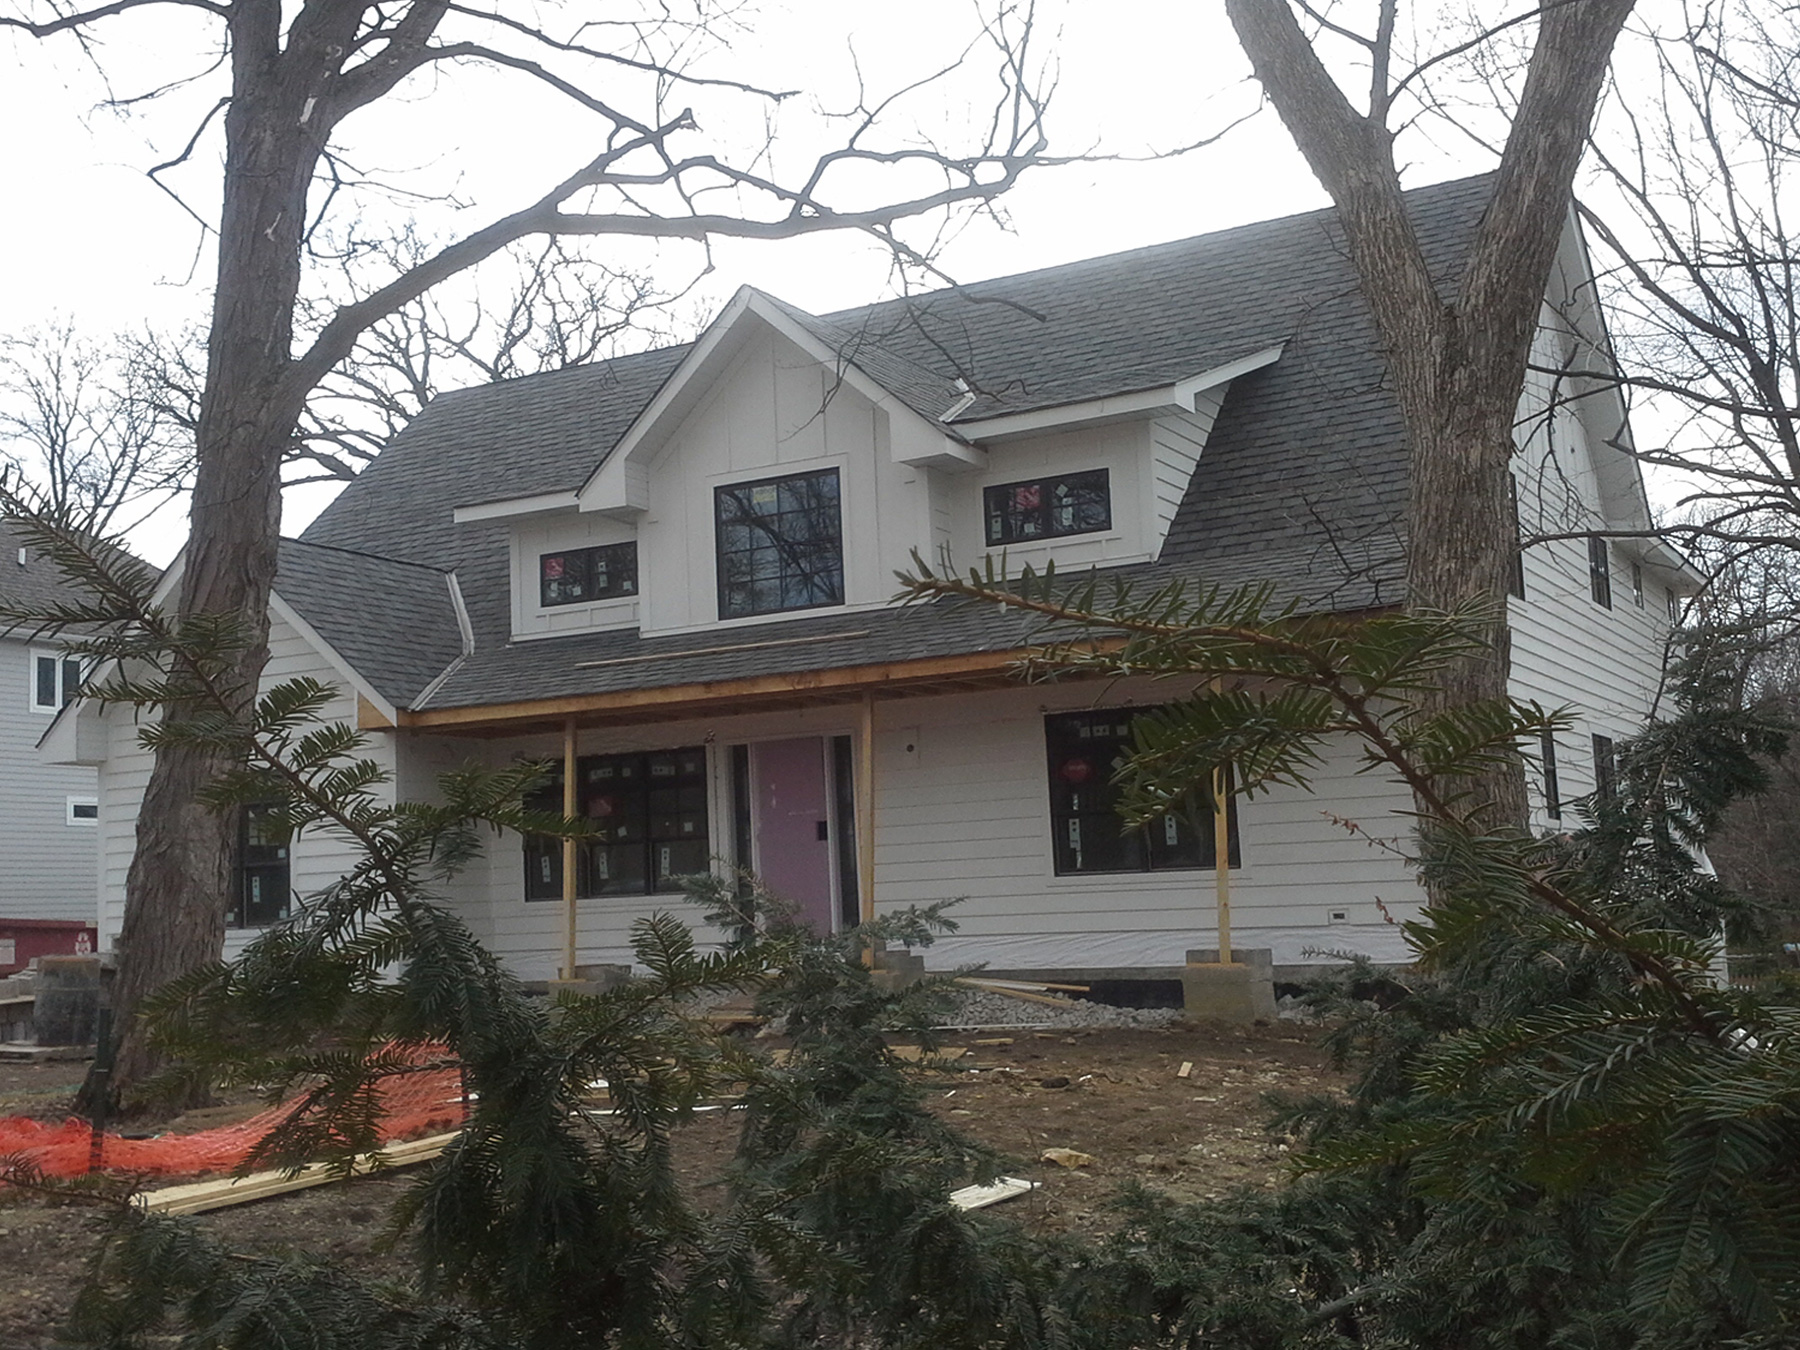 Modern farmhouse in Glen Ellyn, IL.